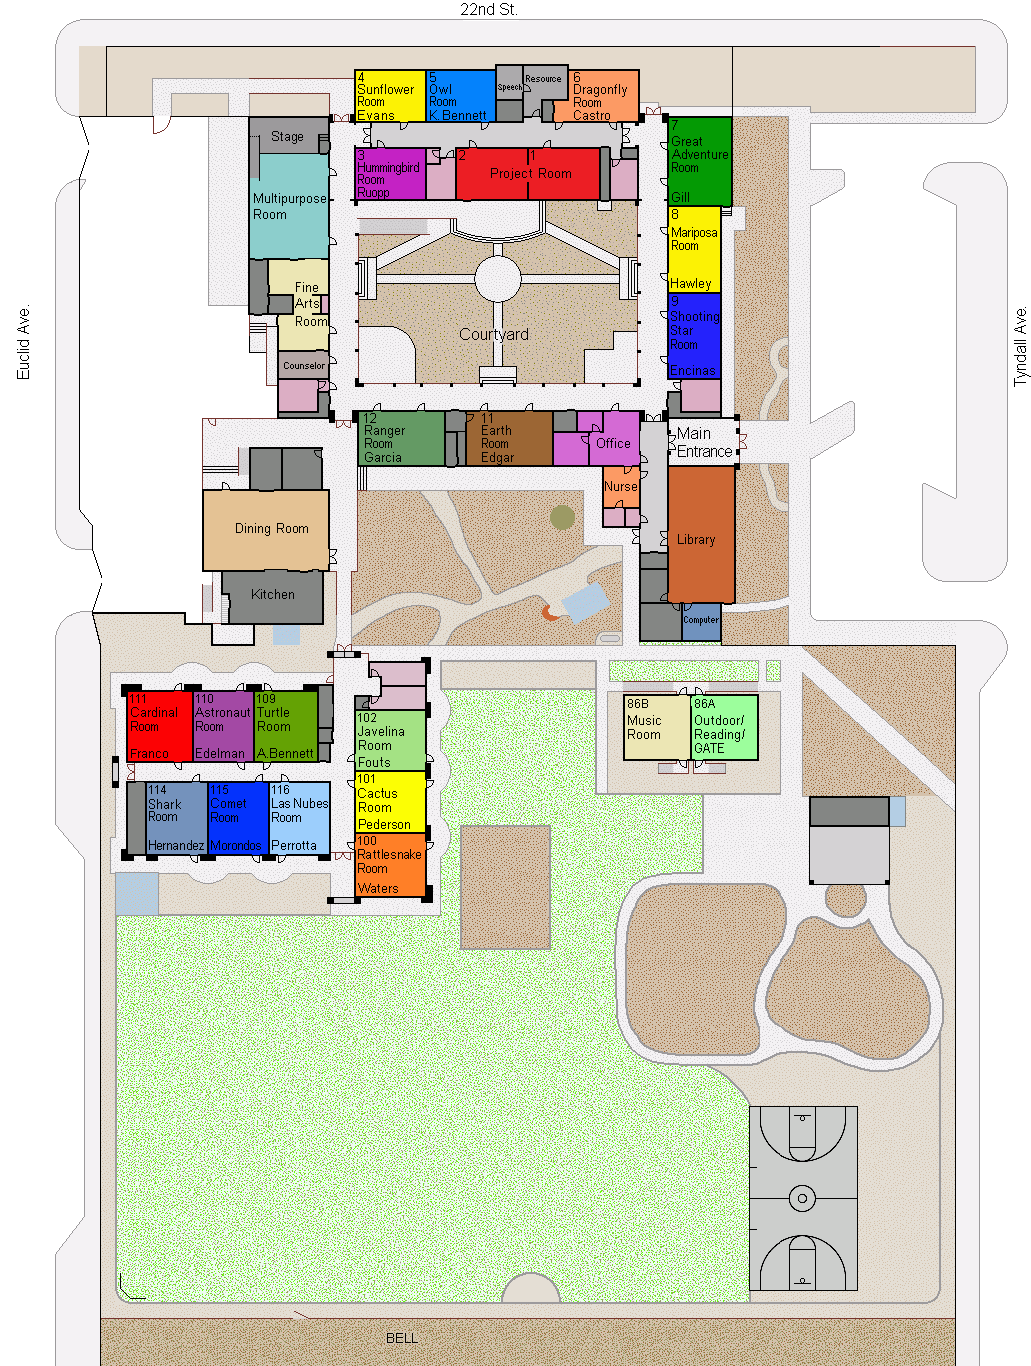 Borton 2017 campus map